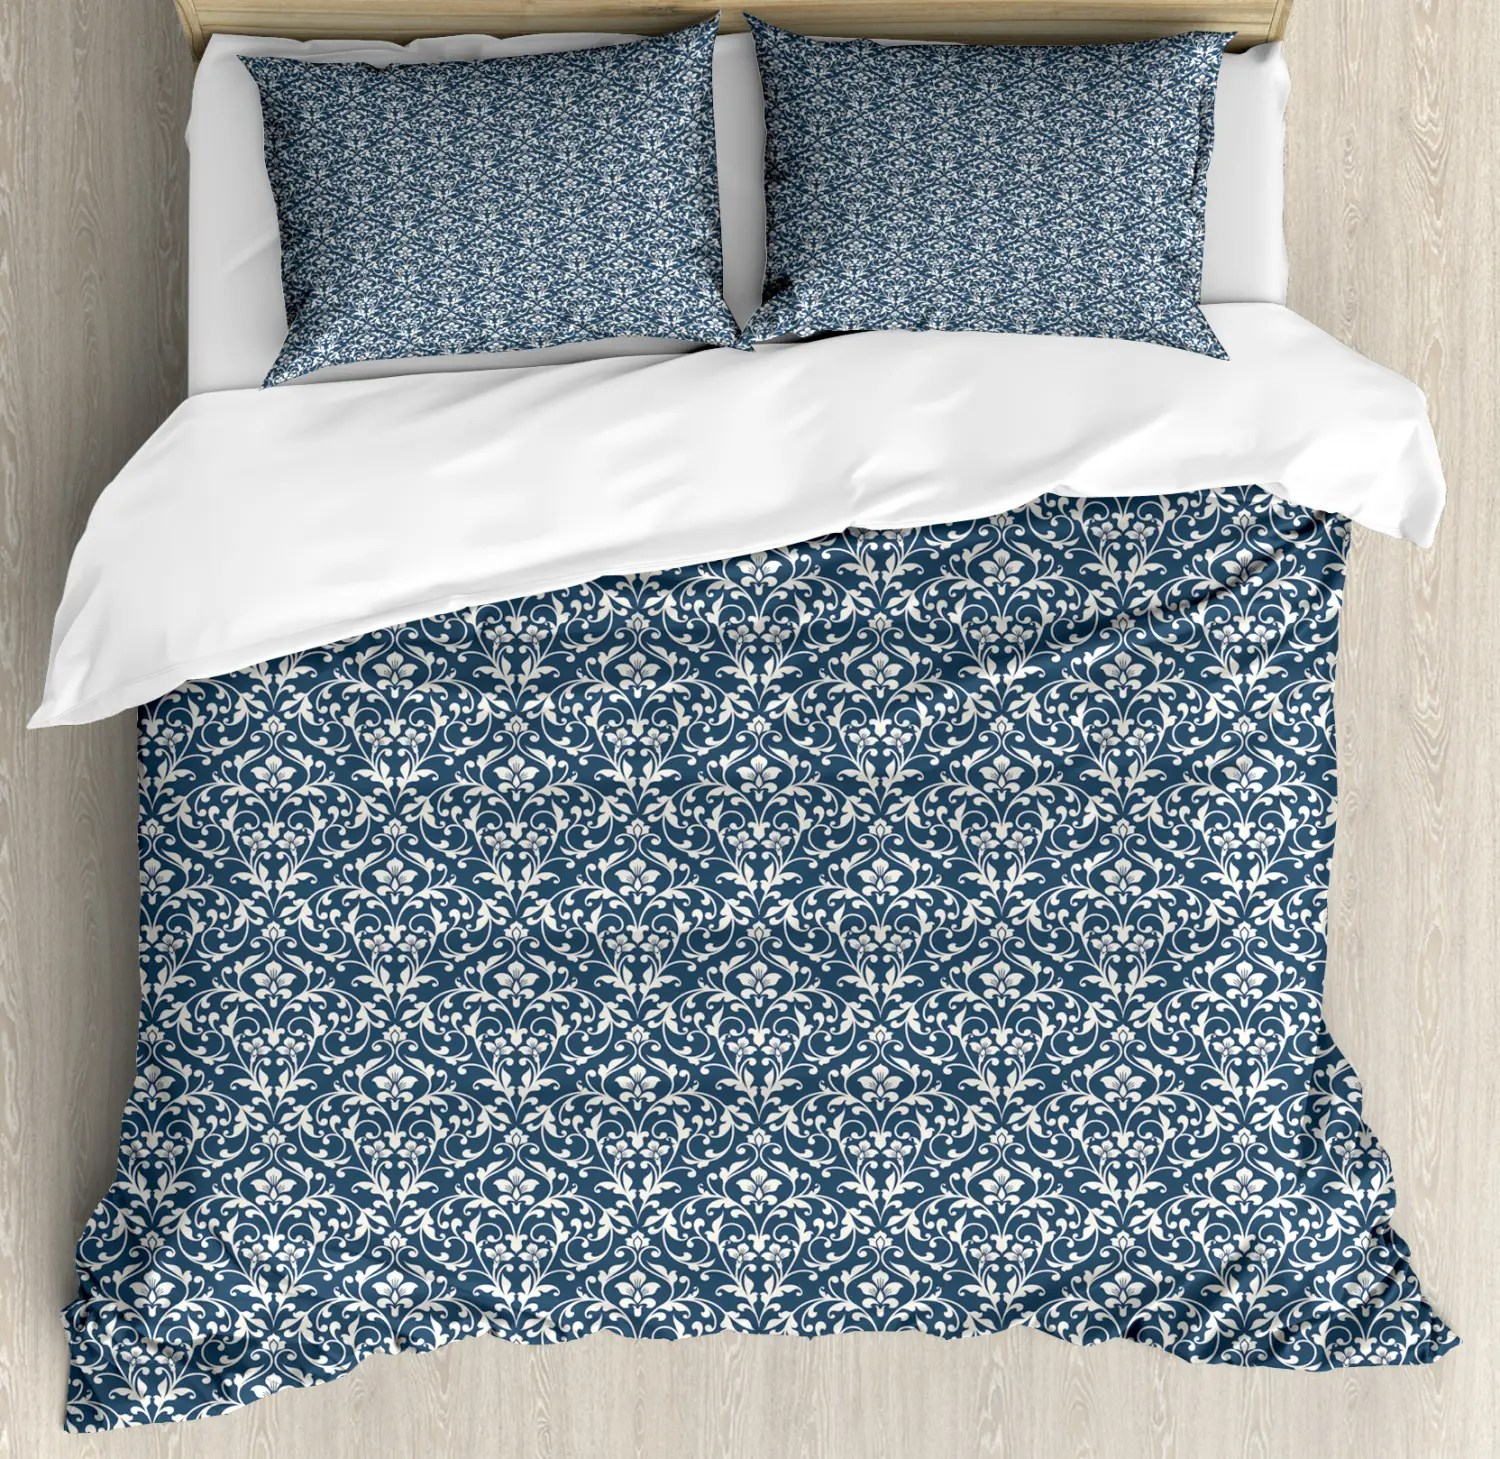 Damask Duvet Details About Damask Duvet Cover Set With Pillow Shams Vibrant Asian Foliage Print